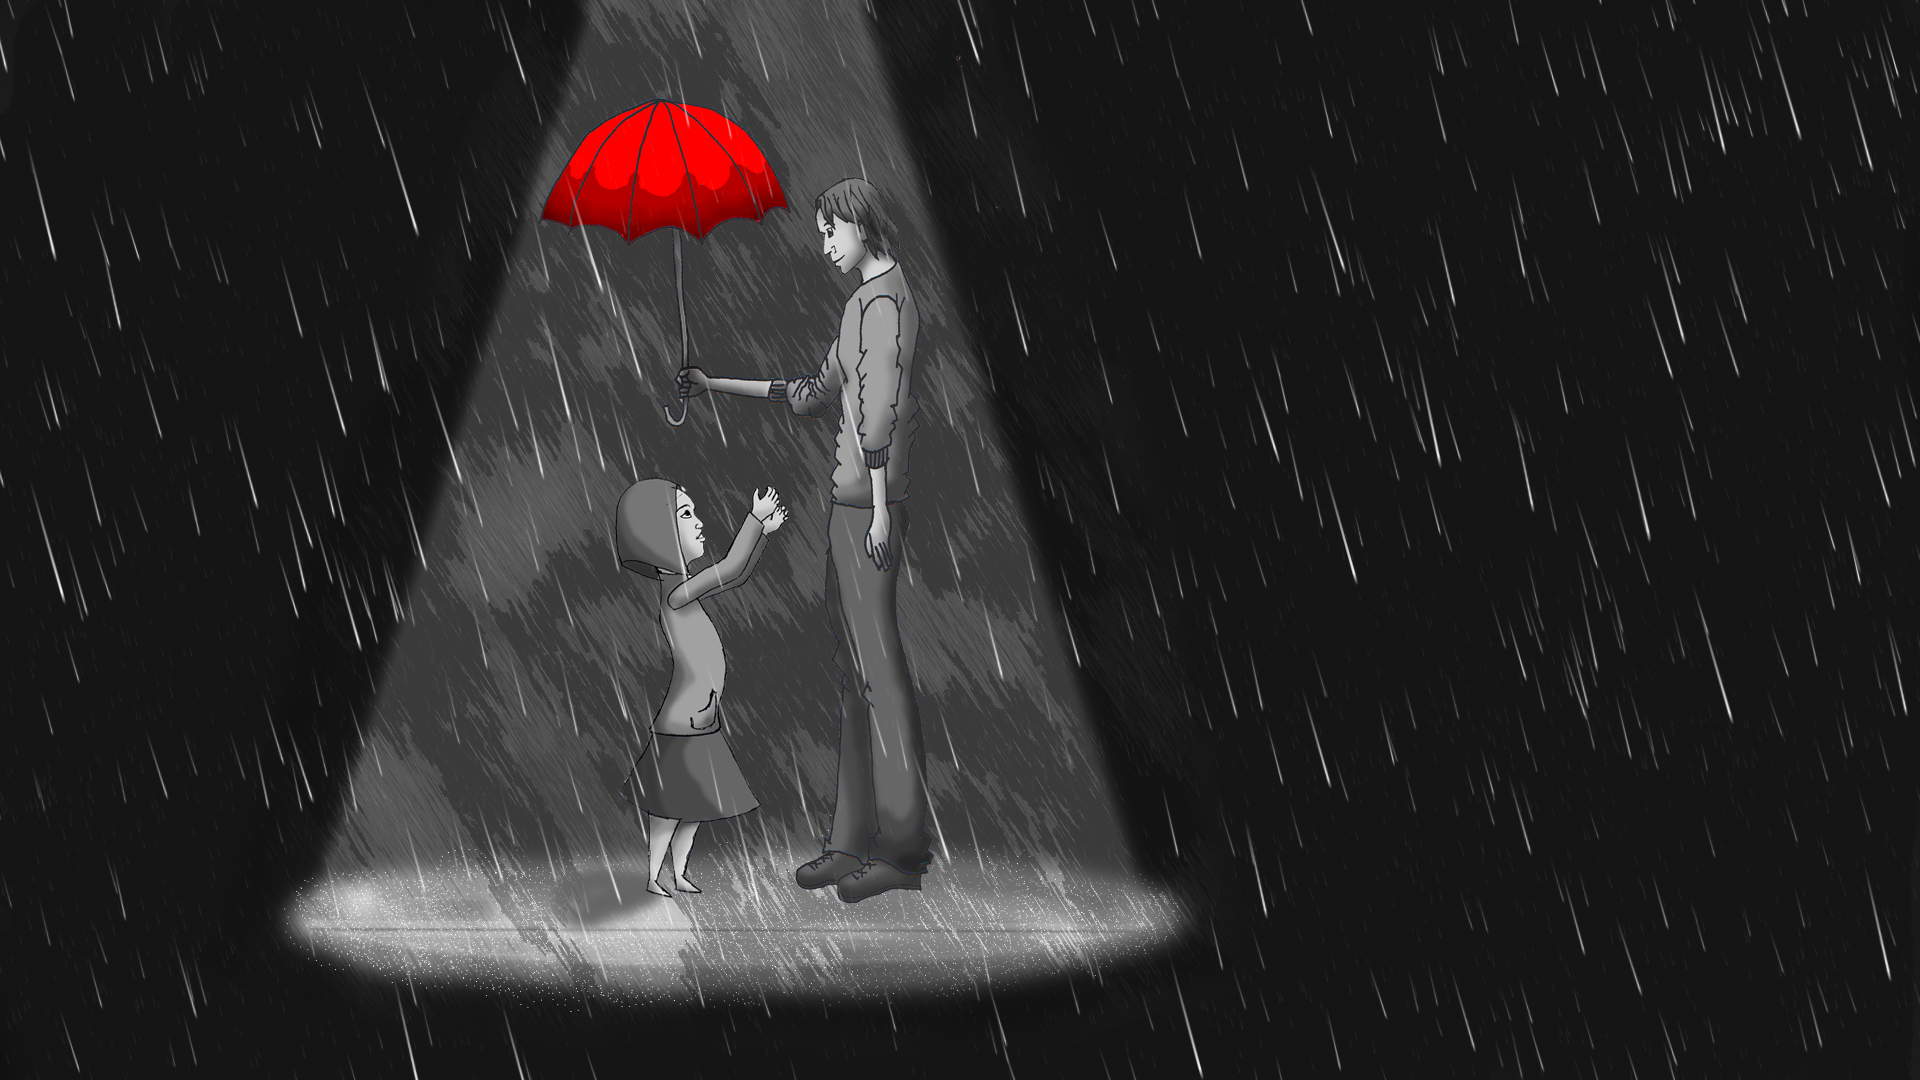 In the Rain - image 4 - student project